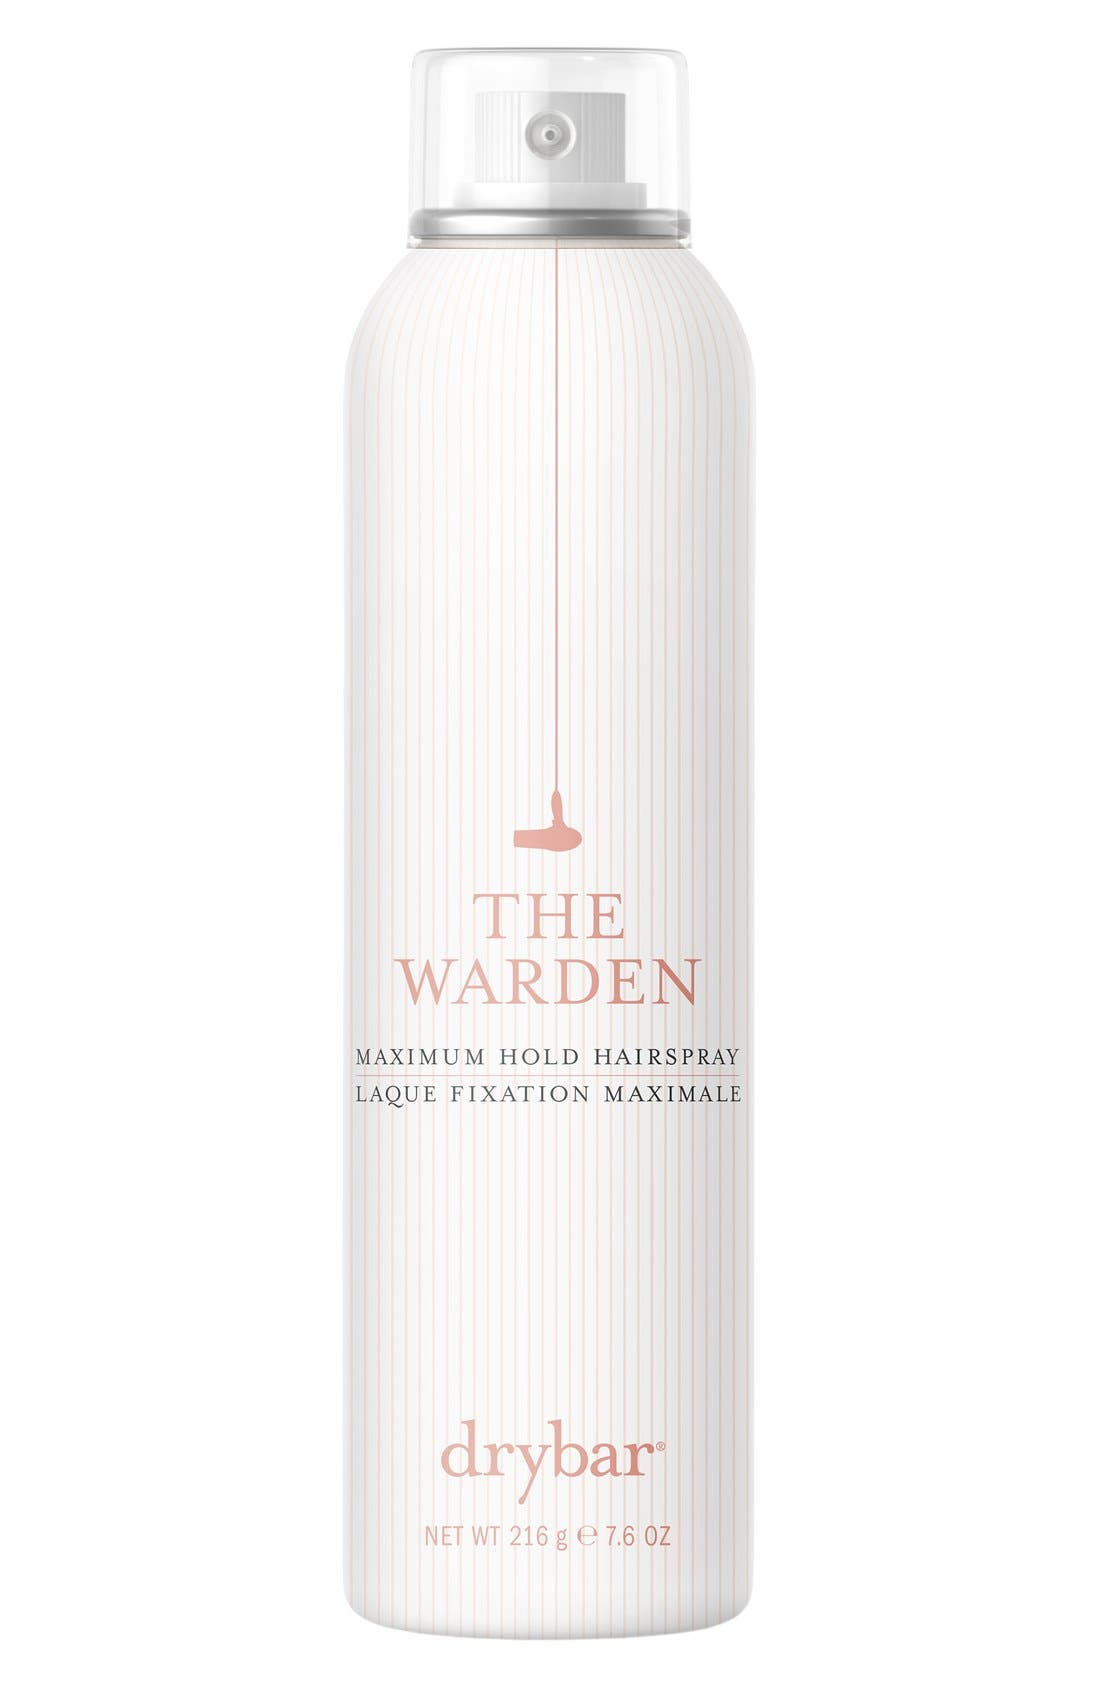 'The Warden' Maximum Hold Hairspray,                             Main thumbnail 1, color,                             NO COLOR